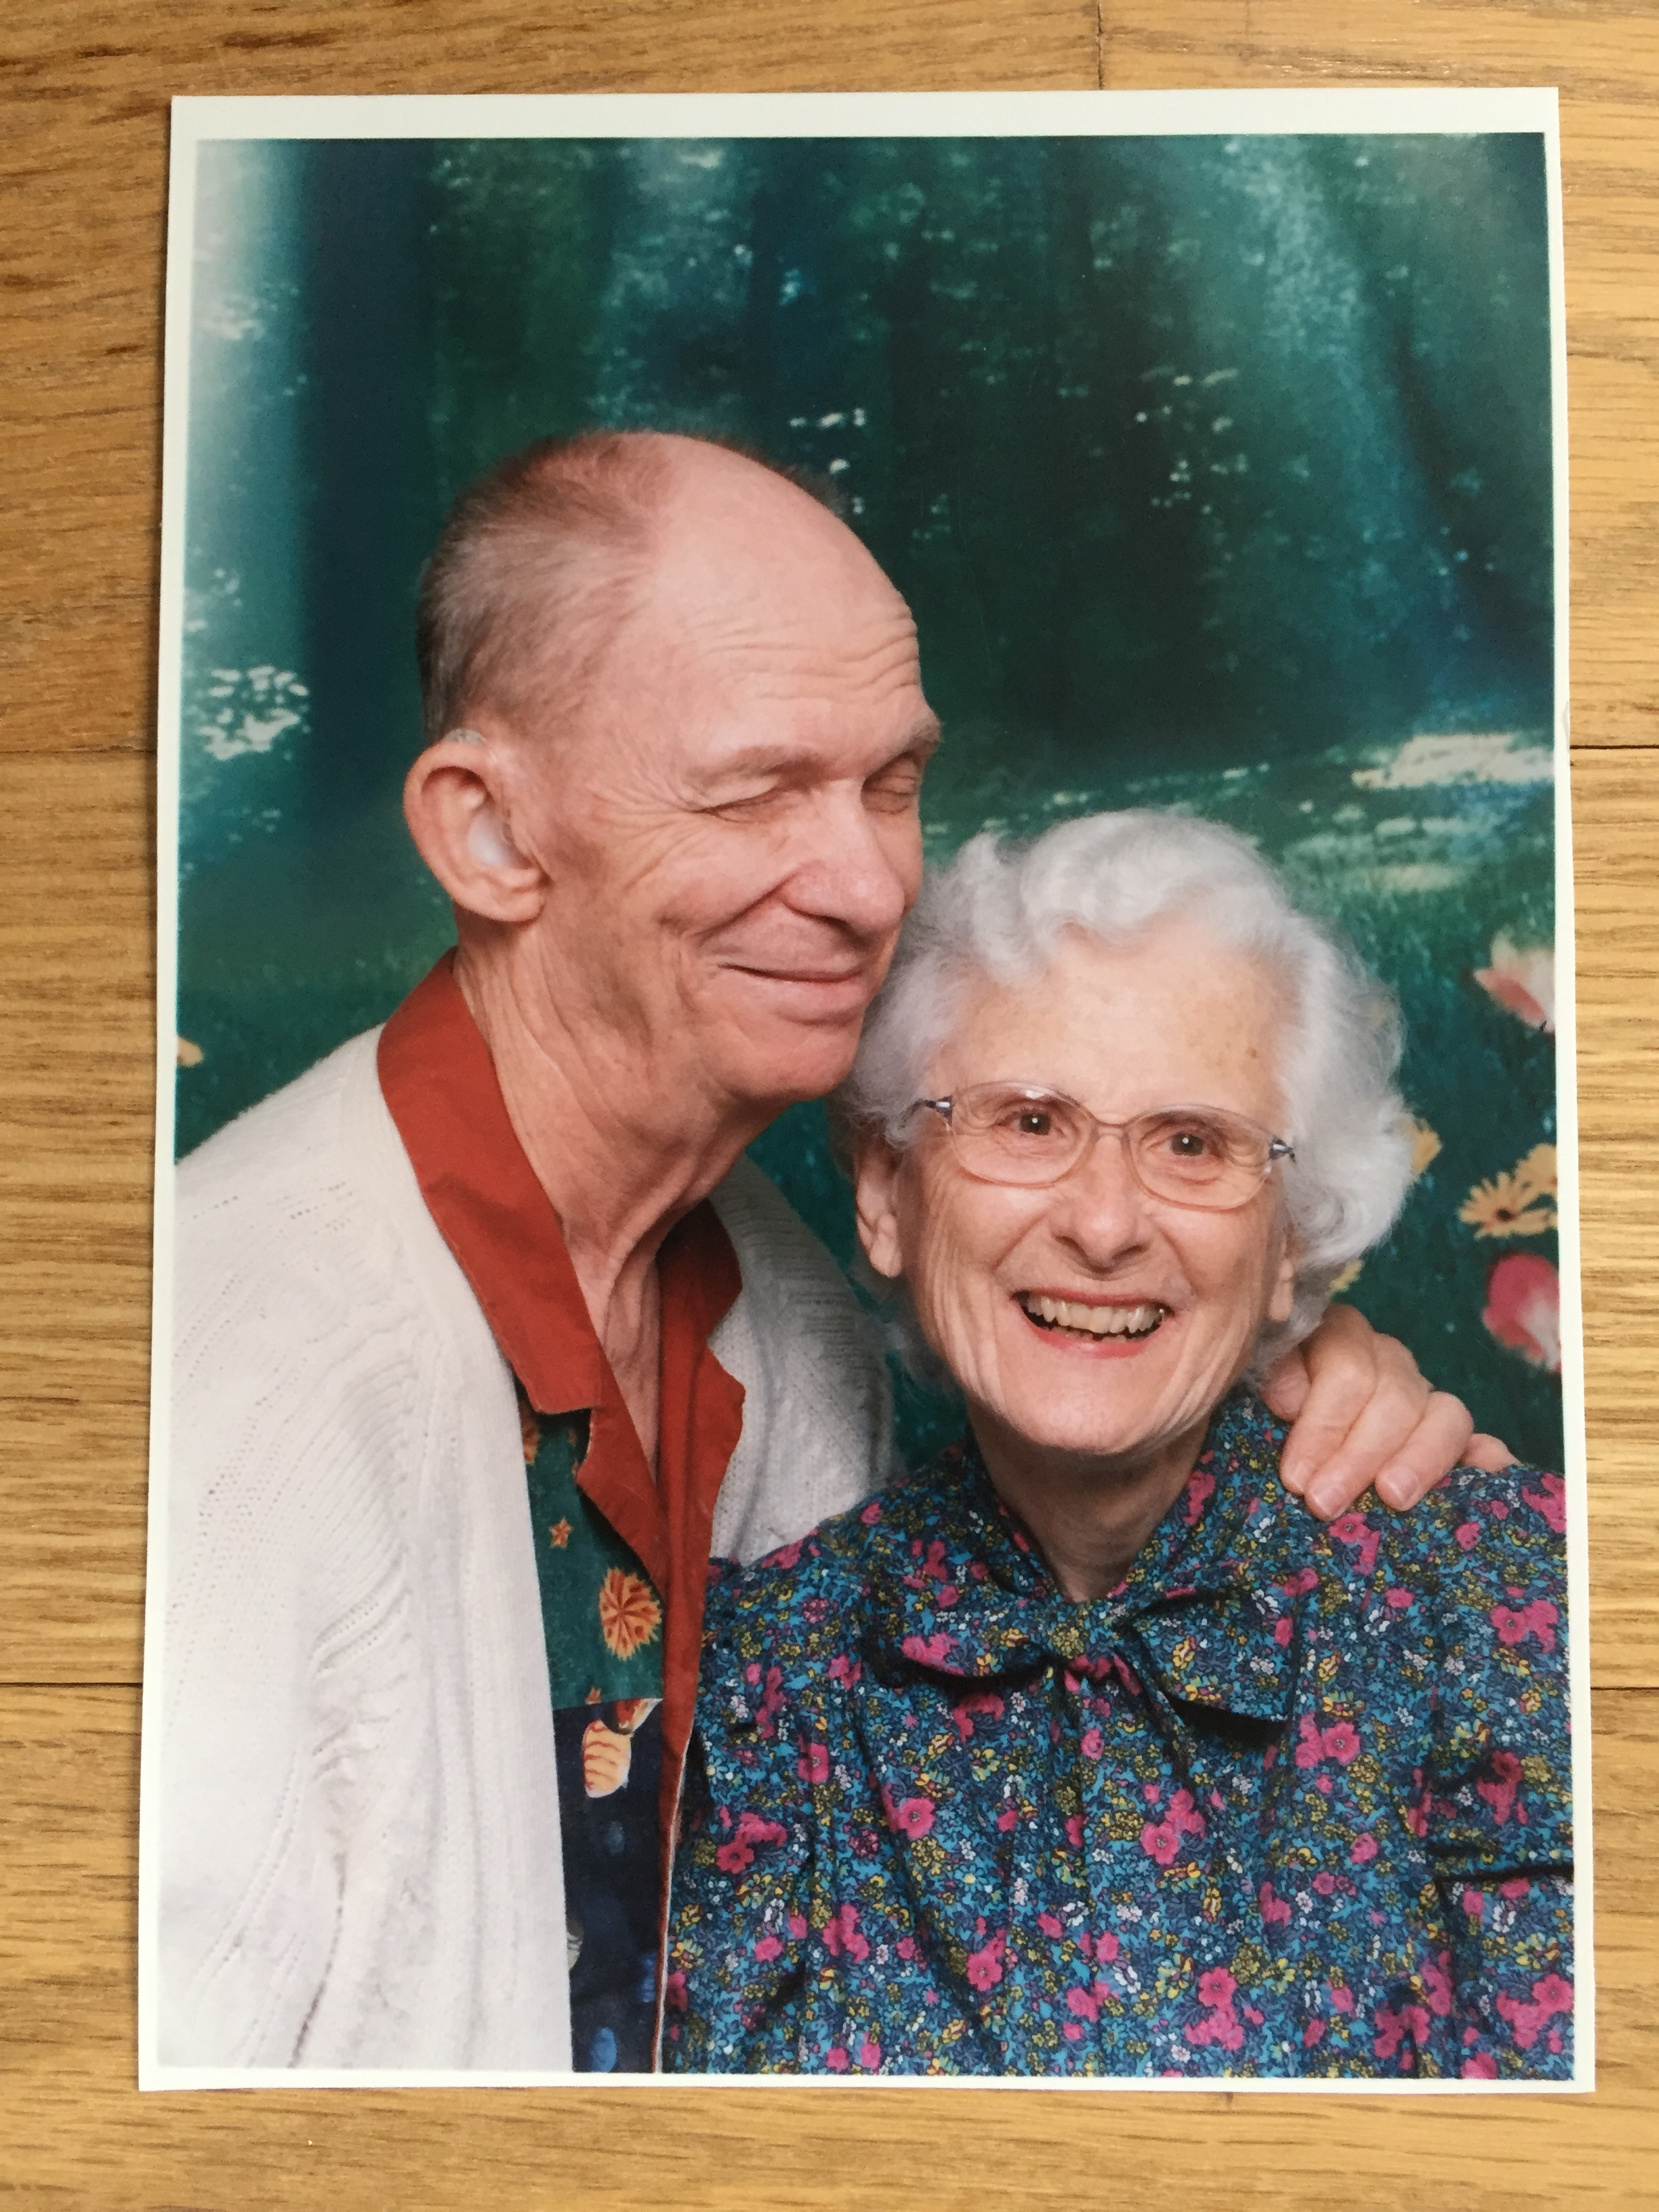 Barbara and her husband, Charles, who also has a hearing loss, in 2004.